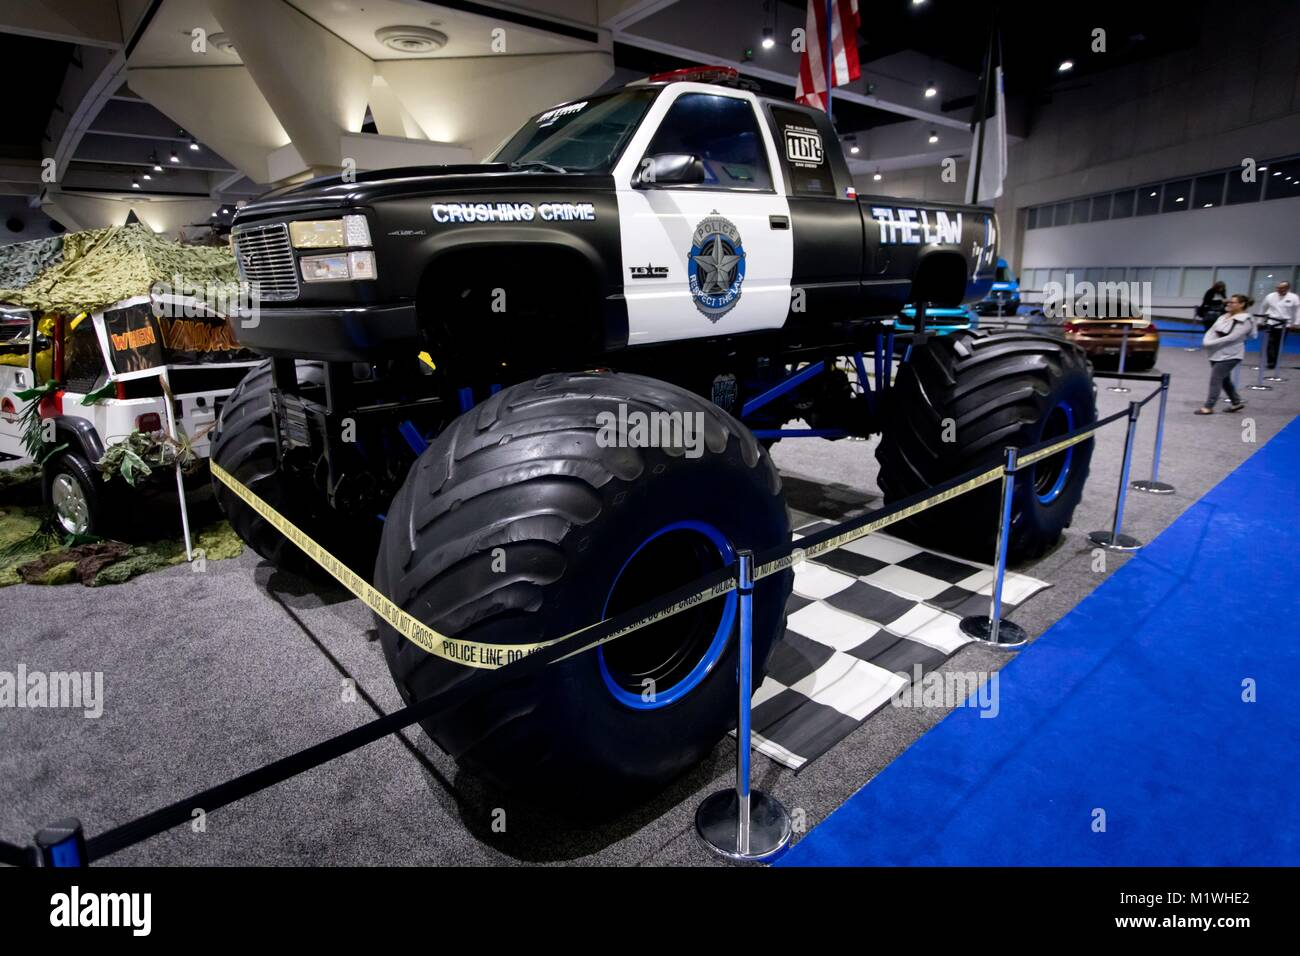 Police Monster Truck At The San Diego International Auto Show In - San diego international car show